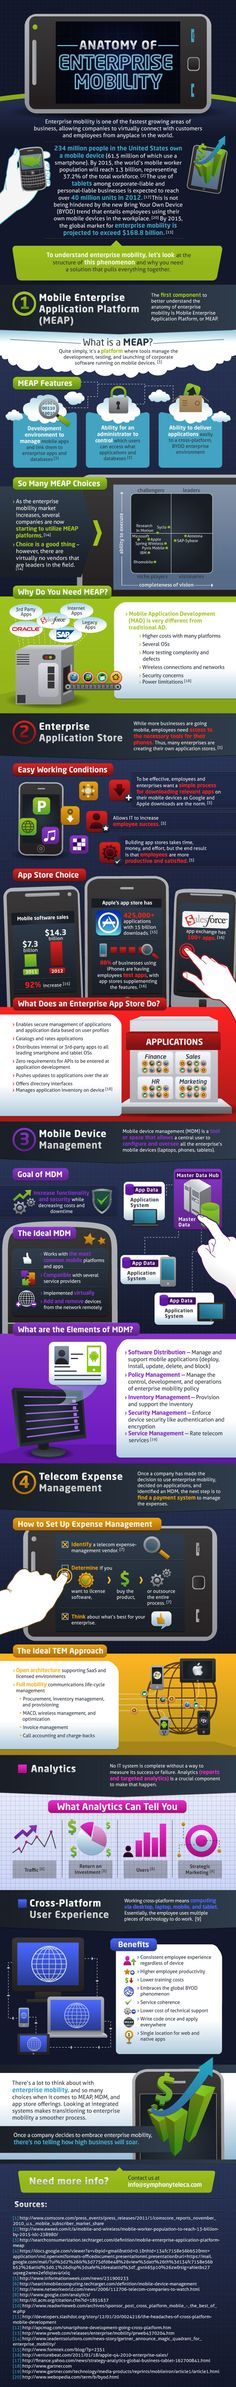 Infographic: Mobile Enterprise Application Platform (MEAP) - how enterprises can customize, control, and deploy mobile apps to their workforce From SymphonyTeleca Enterprise Application, Mobile Application Development, Design Development, Best Mobile, Mobile Marketing, Information Technology, Virtual Assistant, Things To Know, Social Media